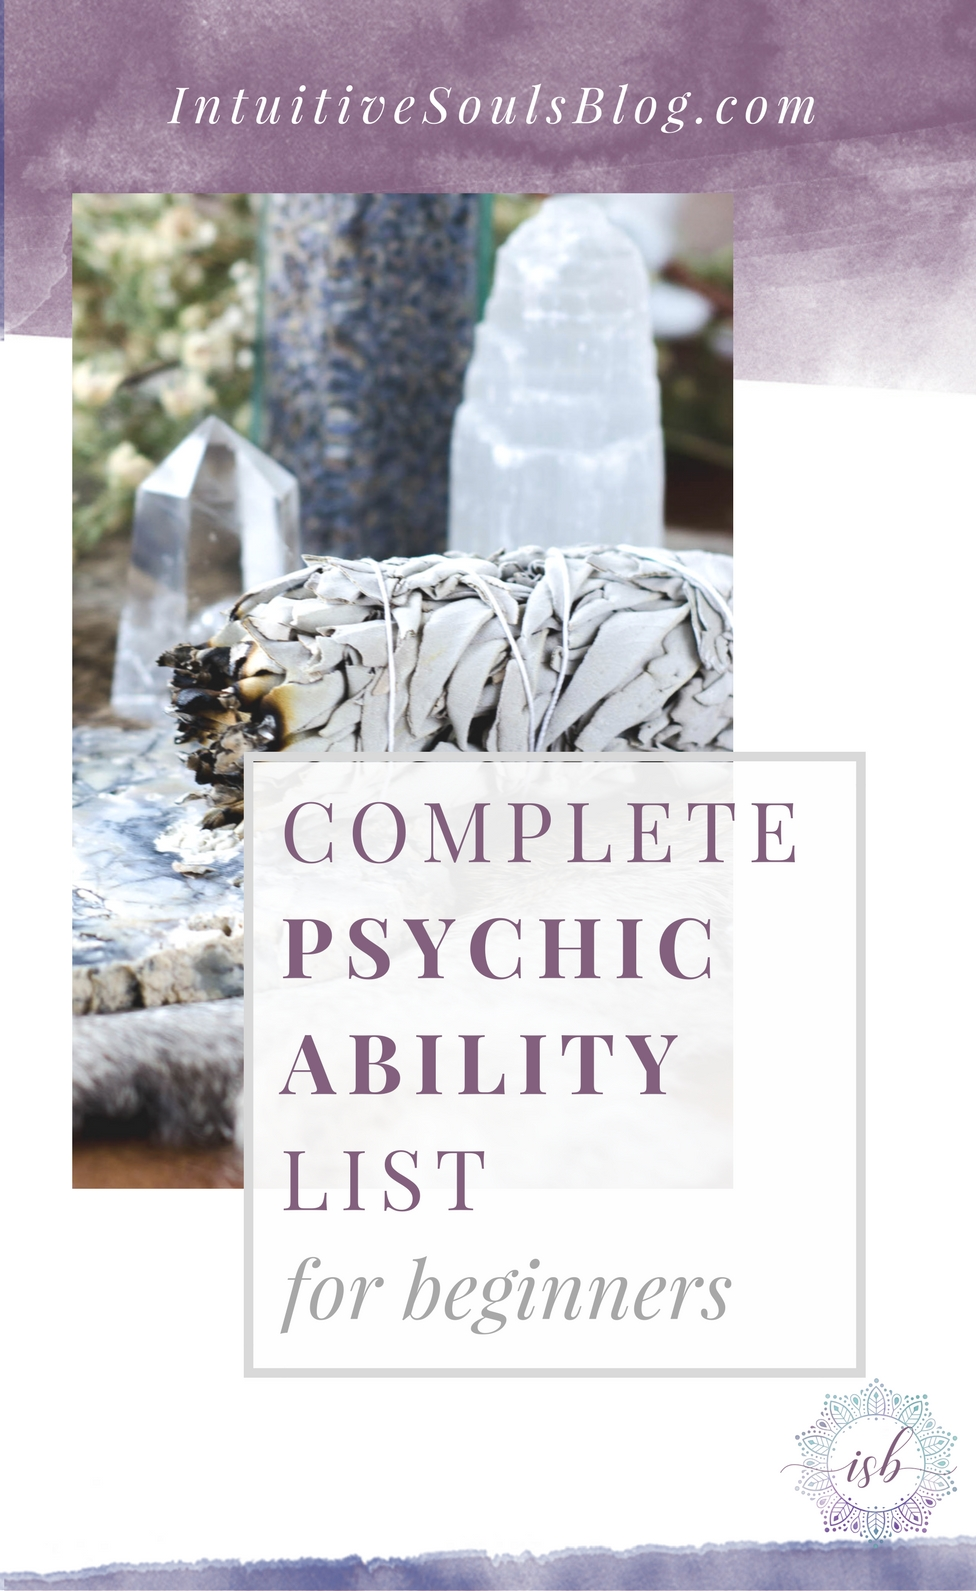 Psychic ability is super easy (and fun!) to understand with this complete beginner's list. By the end of this post, you'll have a clear understanding of all the intuitive gifts and how they work. You're sure to have an